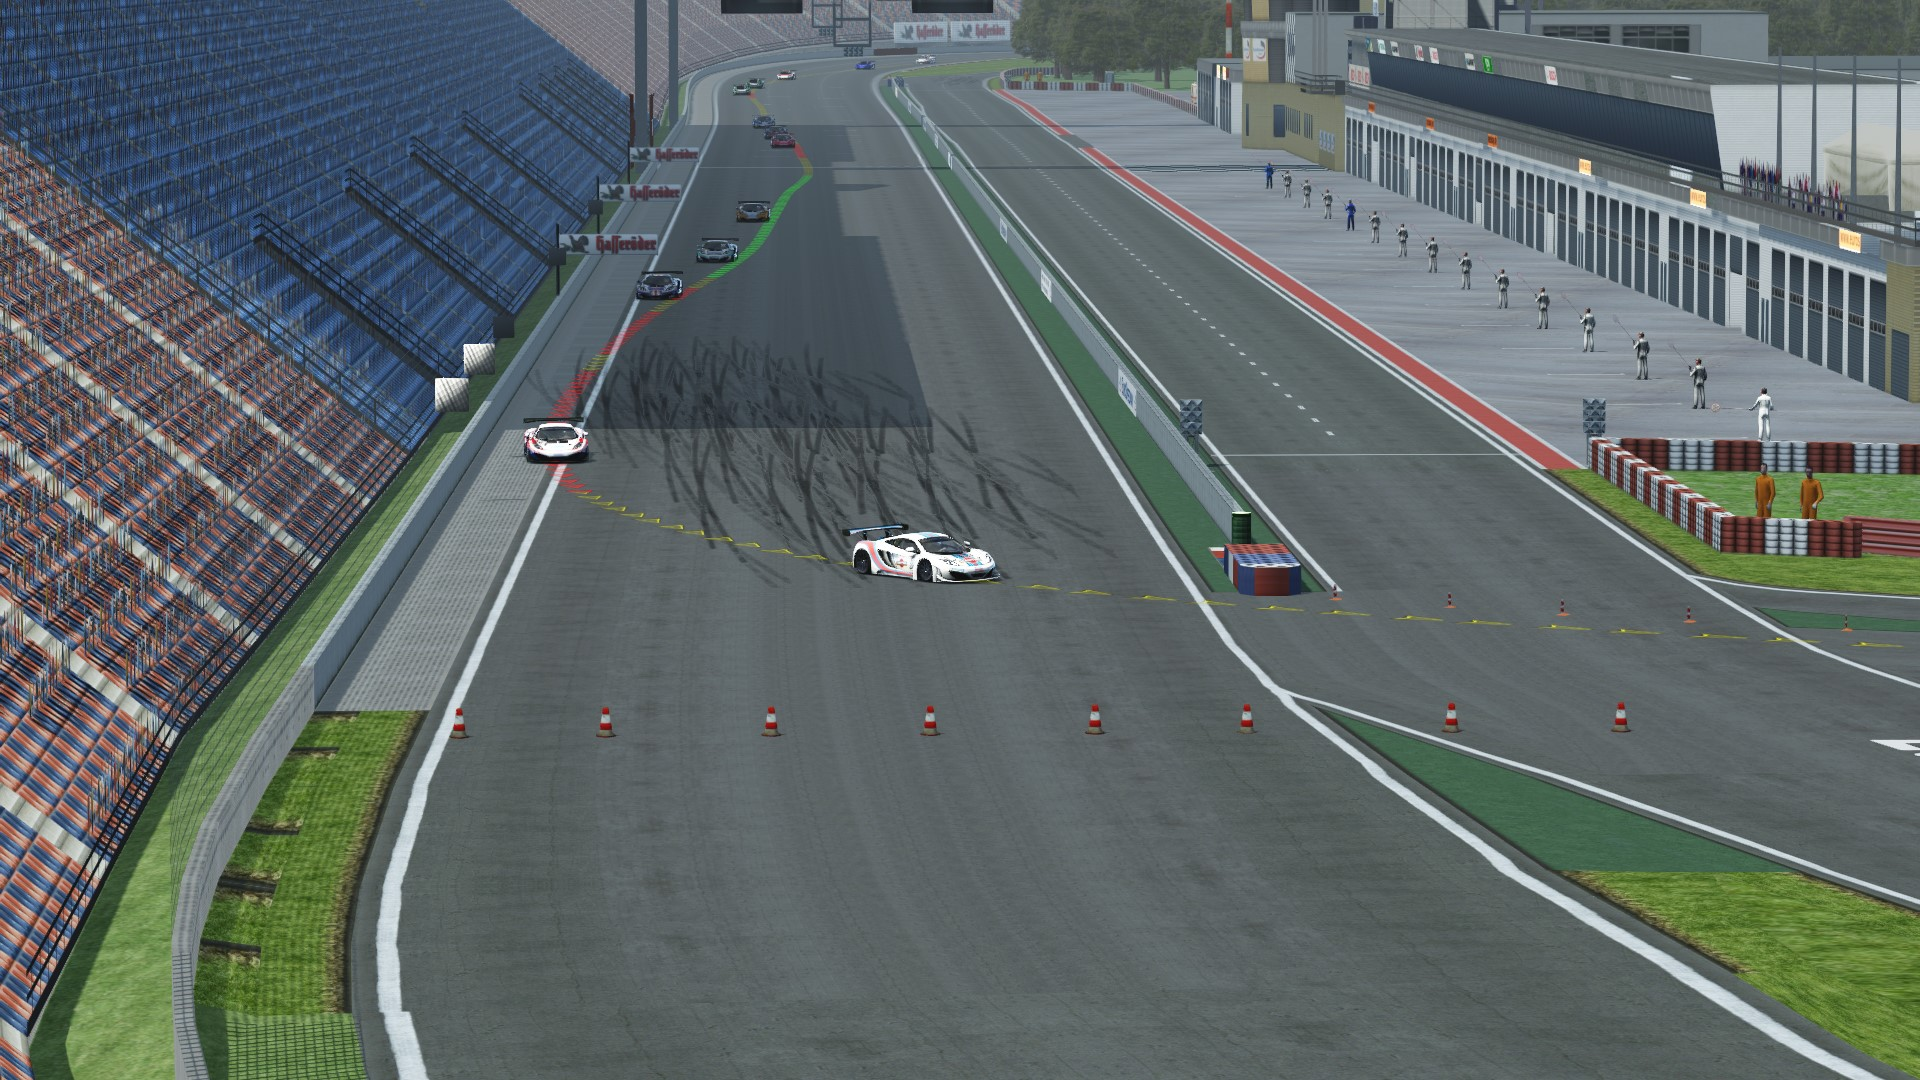 Screenshot_mclaren_mp412c_gt3_eurospeedwaygp_23-8-115-20-38-25.jpg